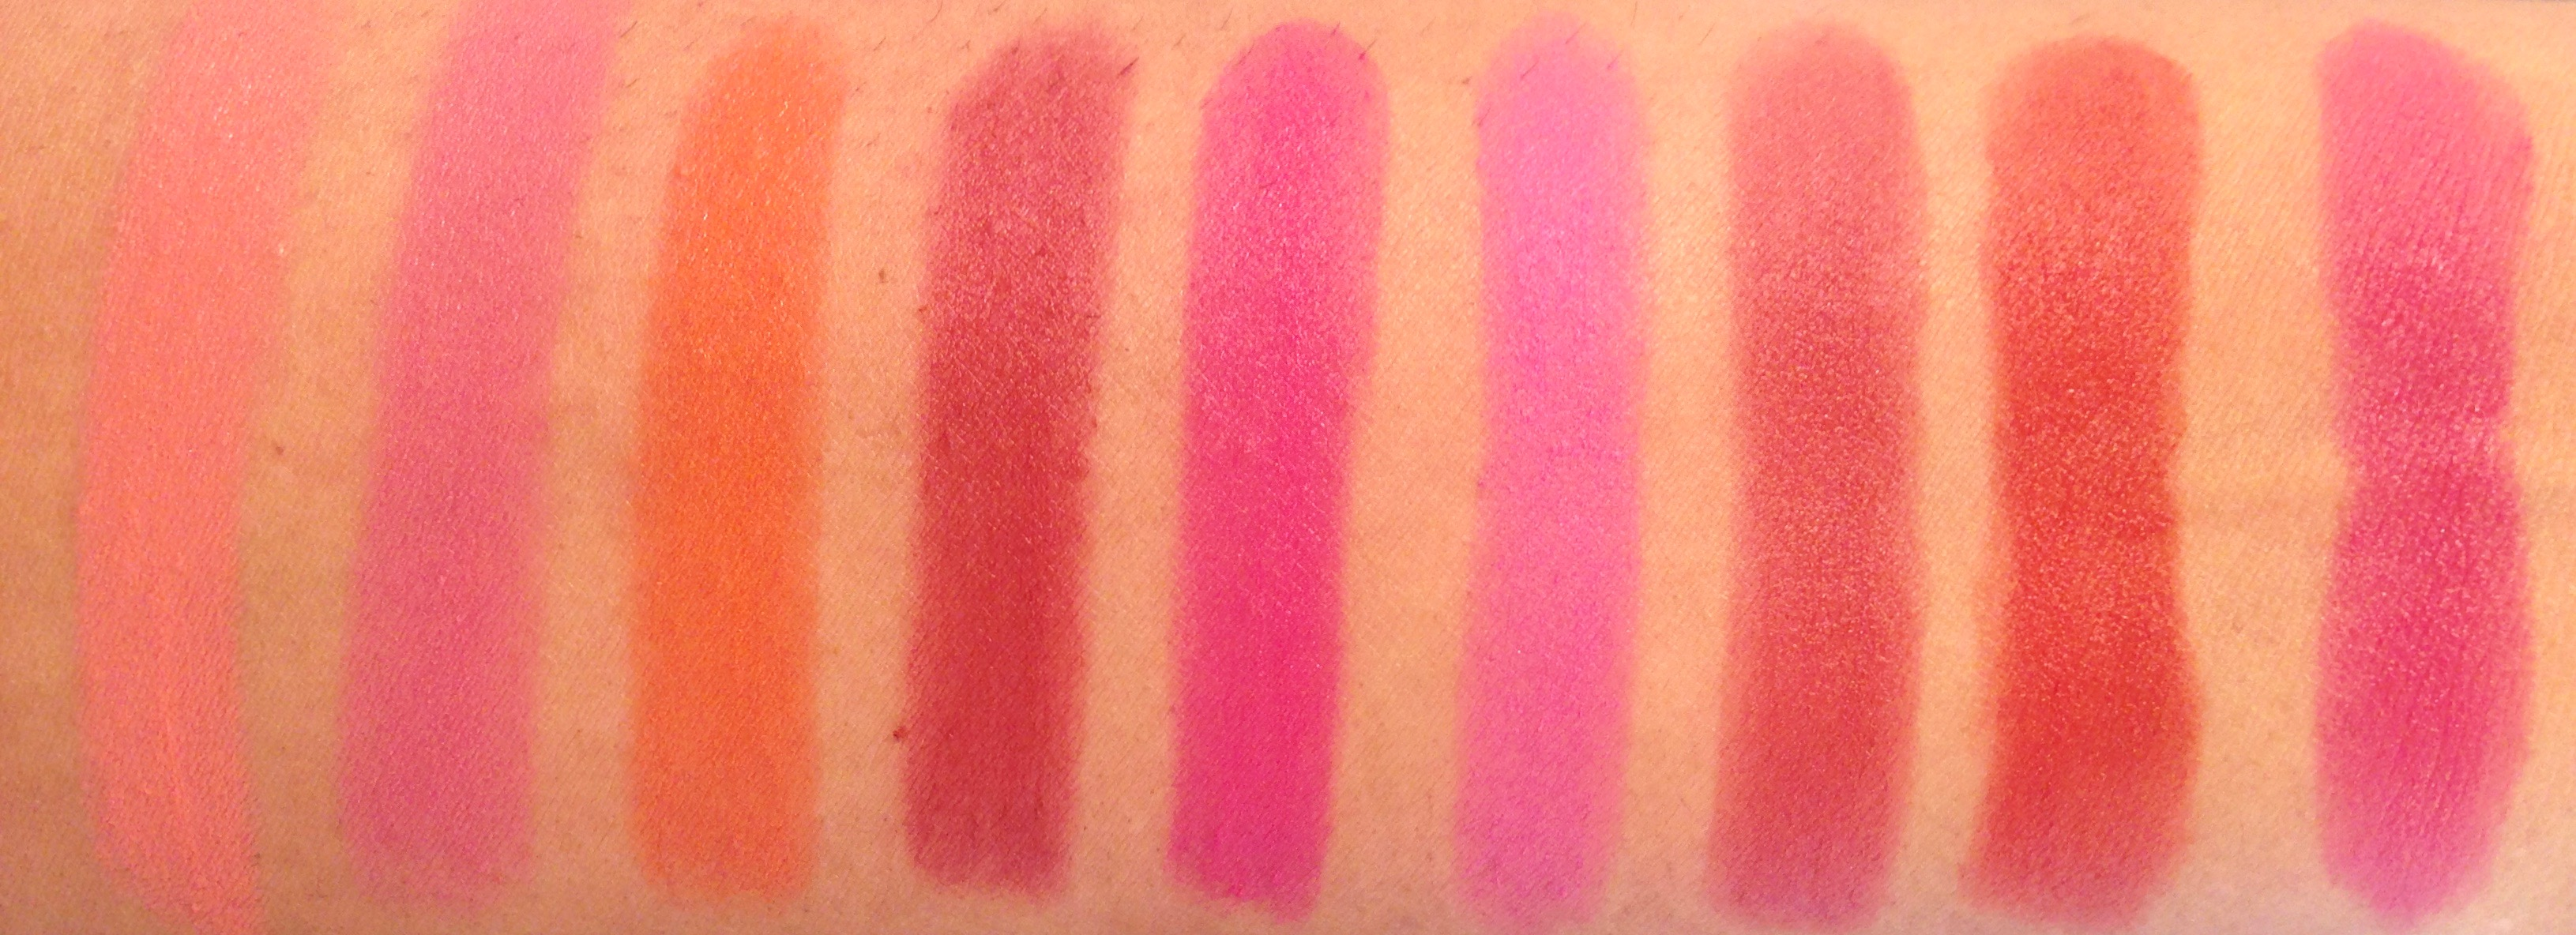 Maybelline Pink Me Up Swatch